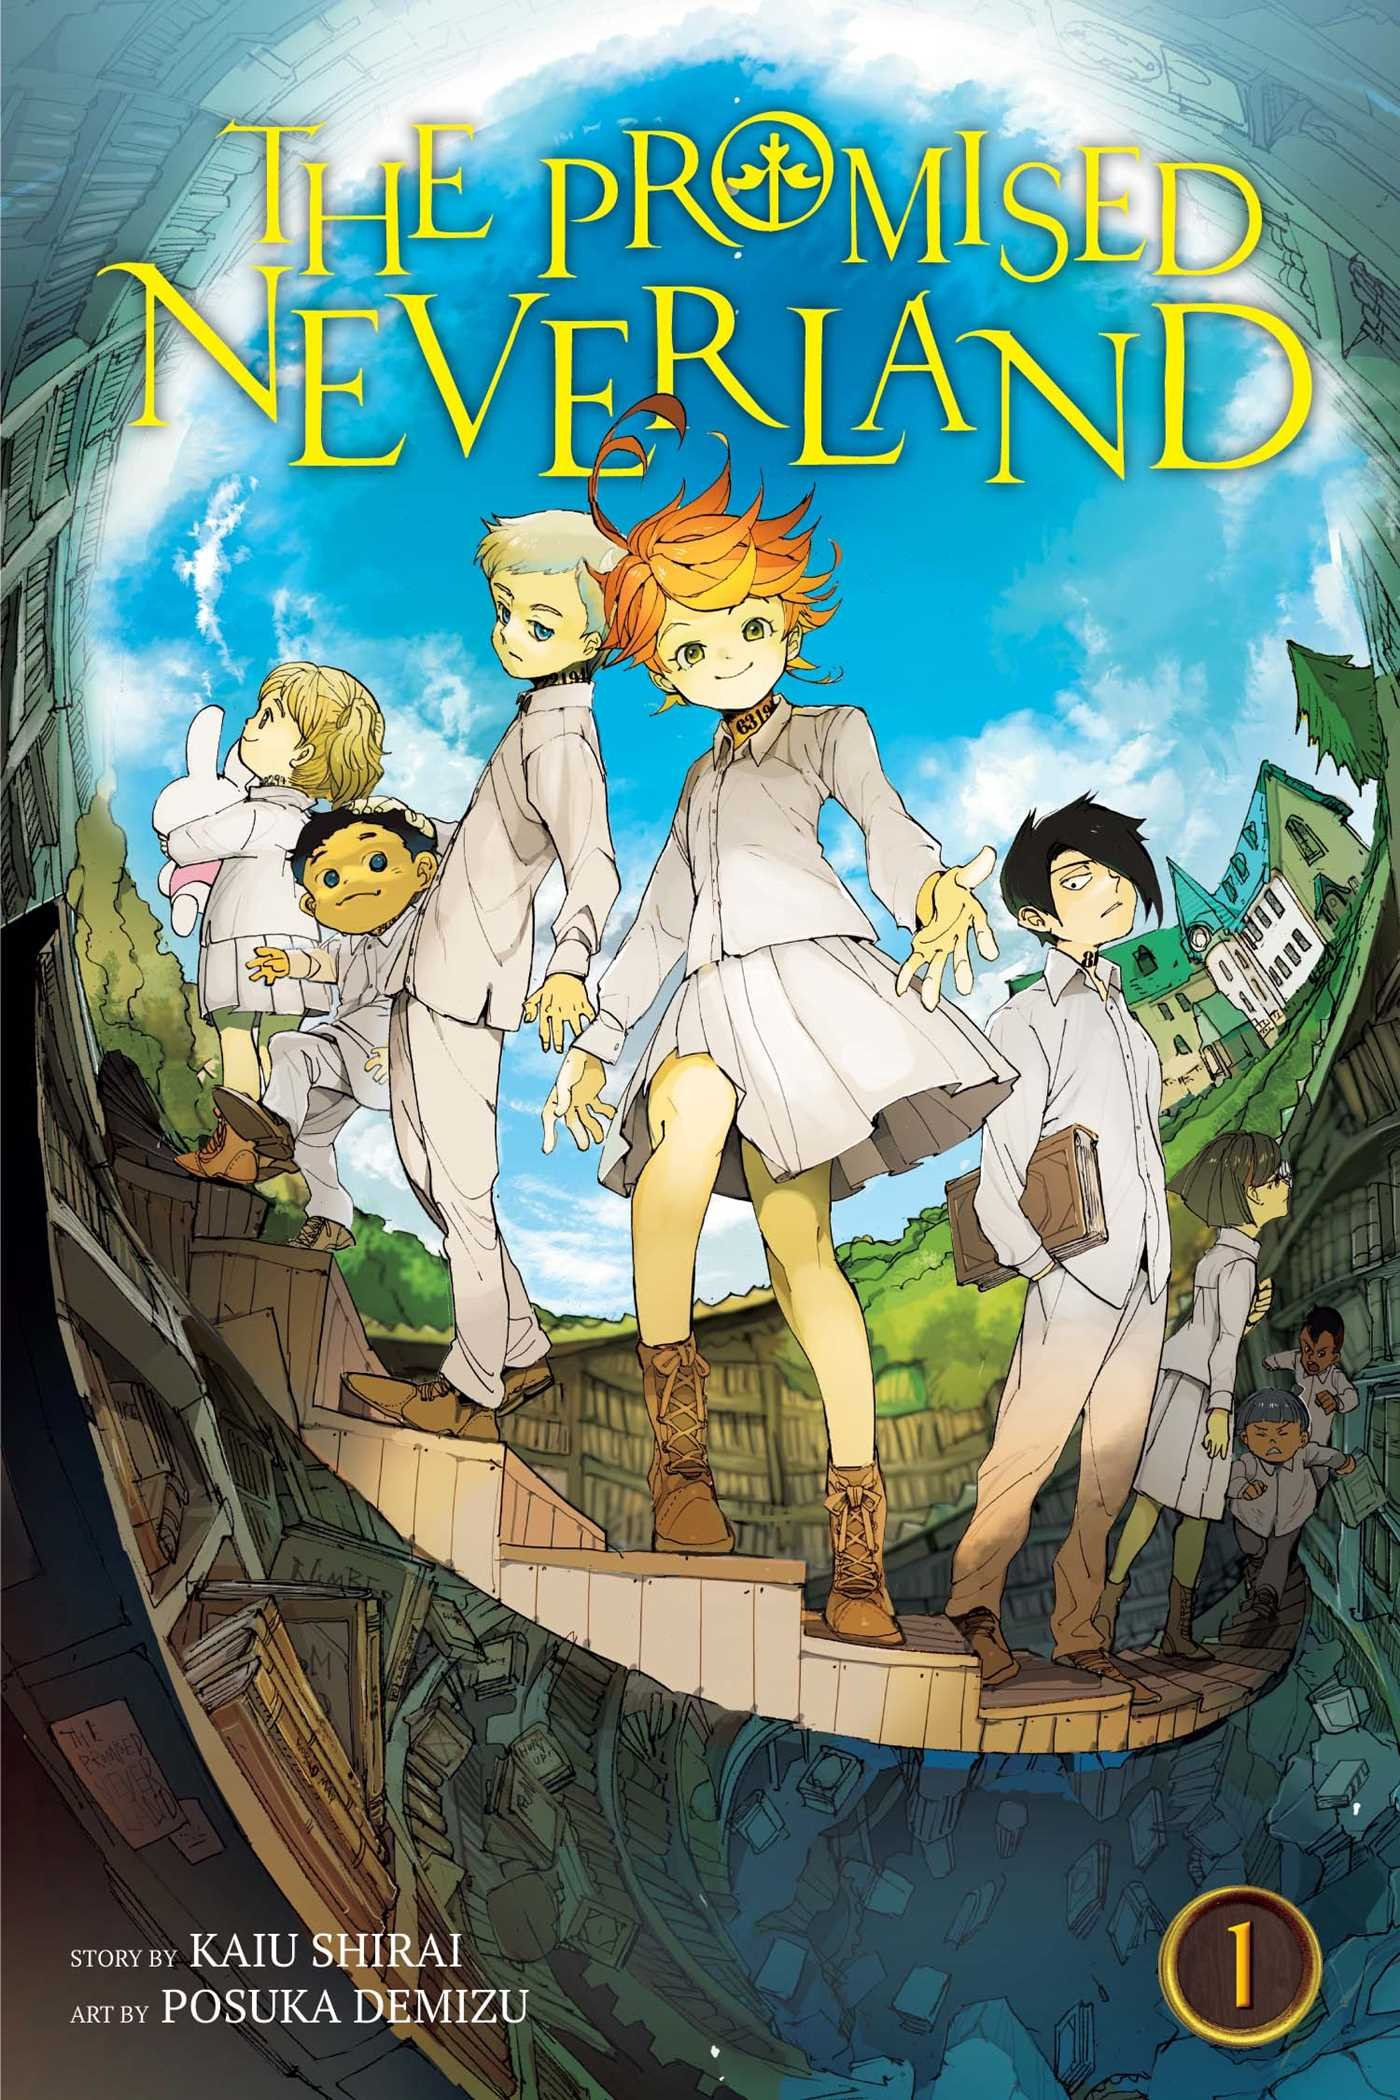 Amazon.com: The Promised Neverland, Vol. 1 (1) (9781421597126): Shirai,  Kaiu, Demizu, Posuka: Books